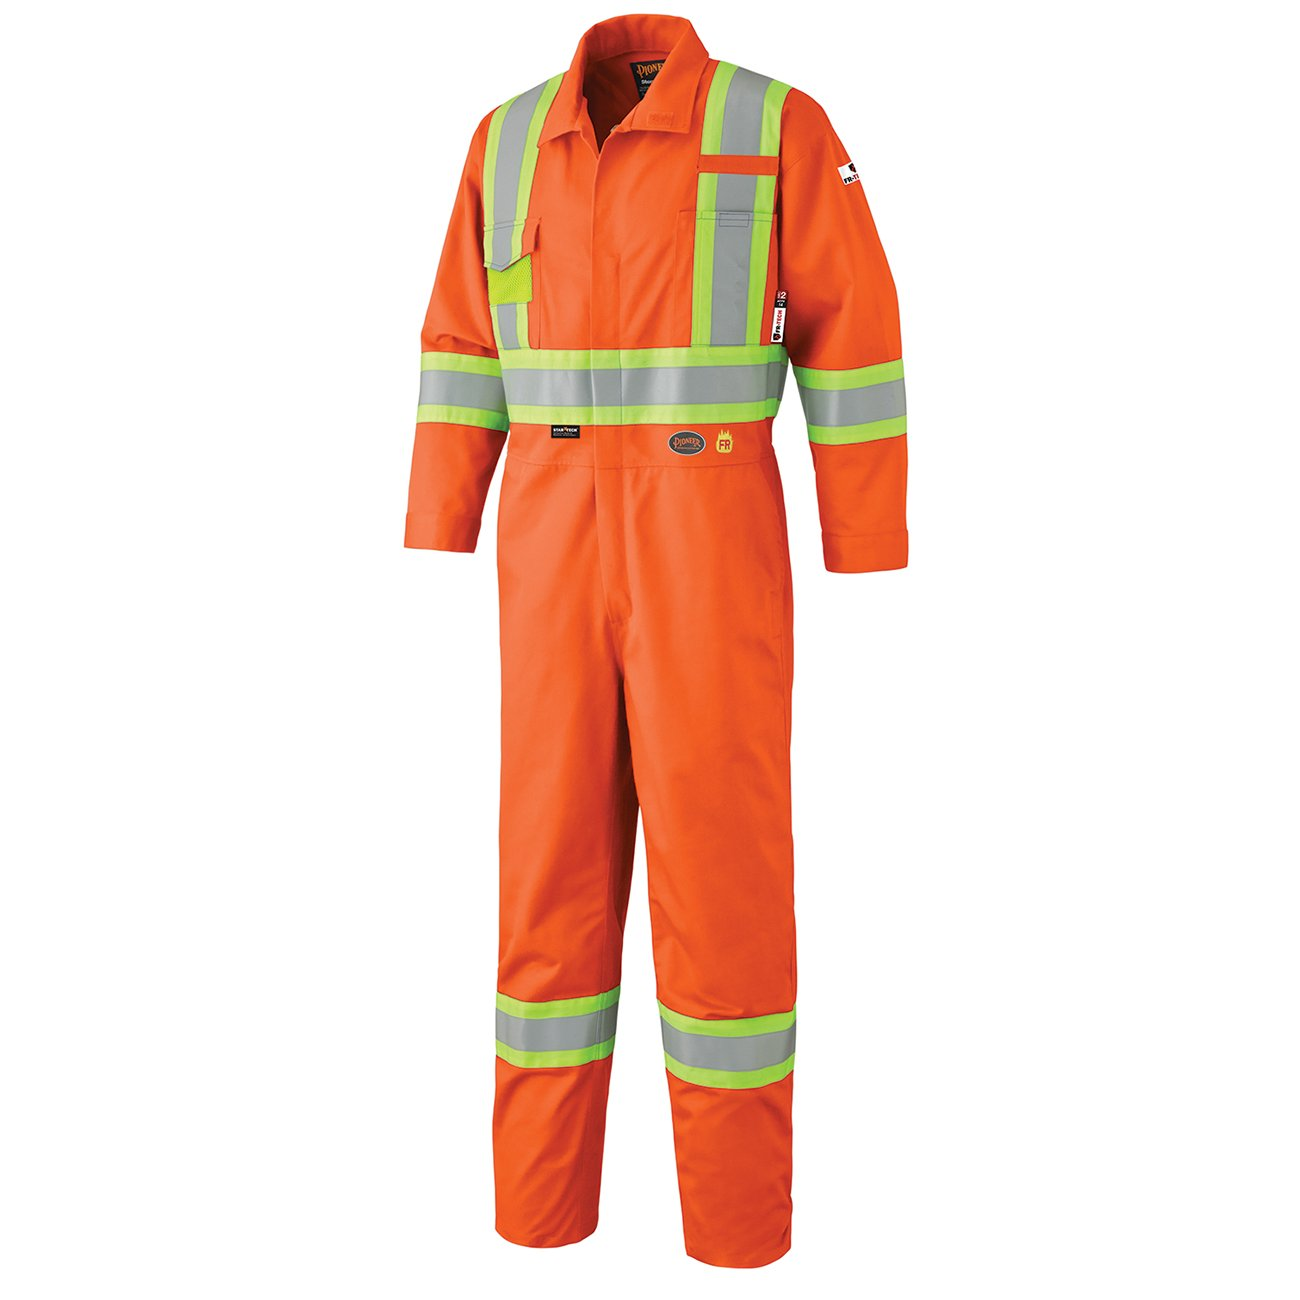 Pioneer FR-Tech FR Safety Coverall (Tall) V254018T - 7700T